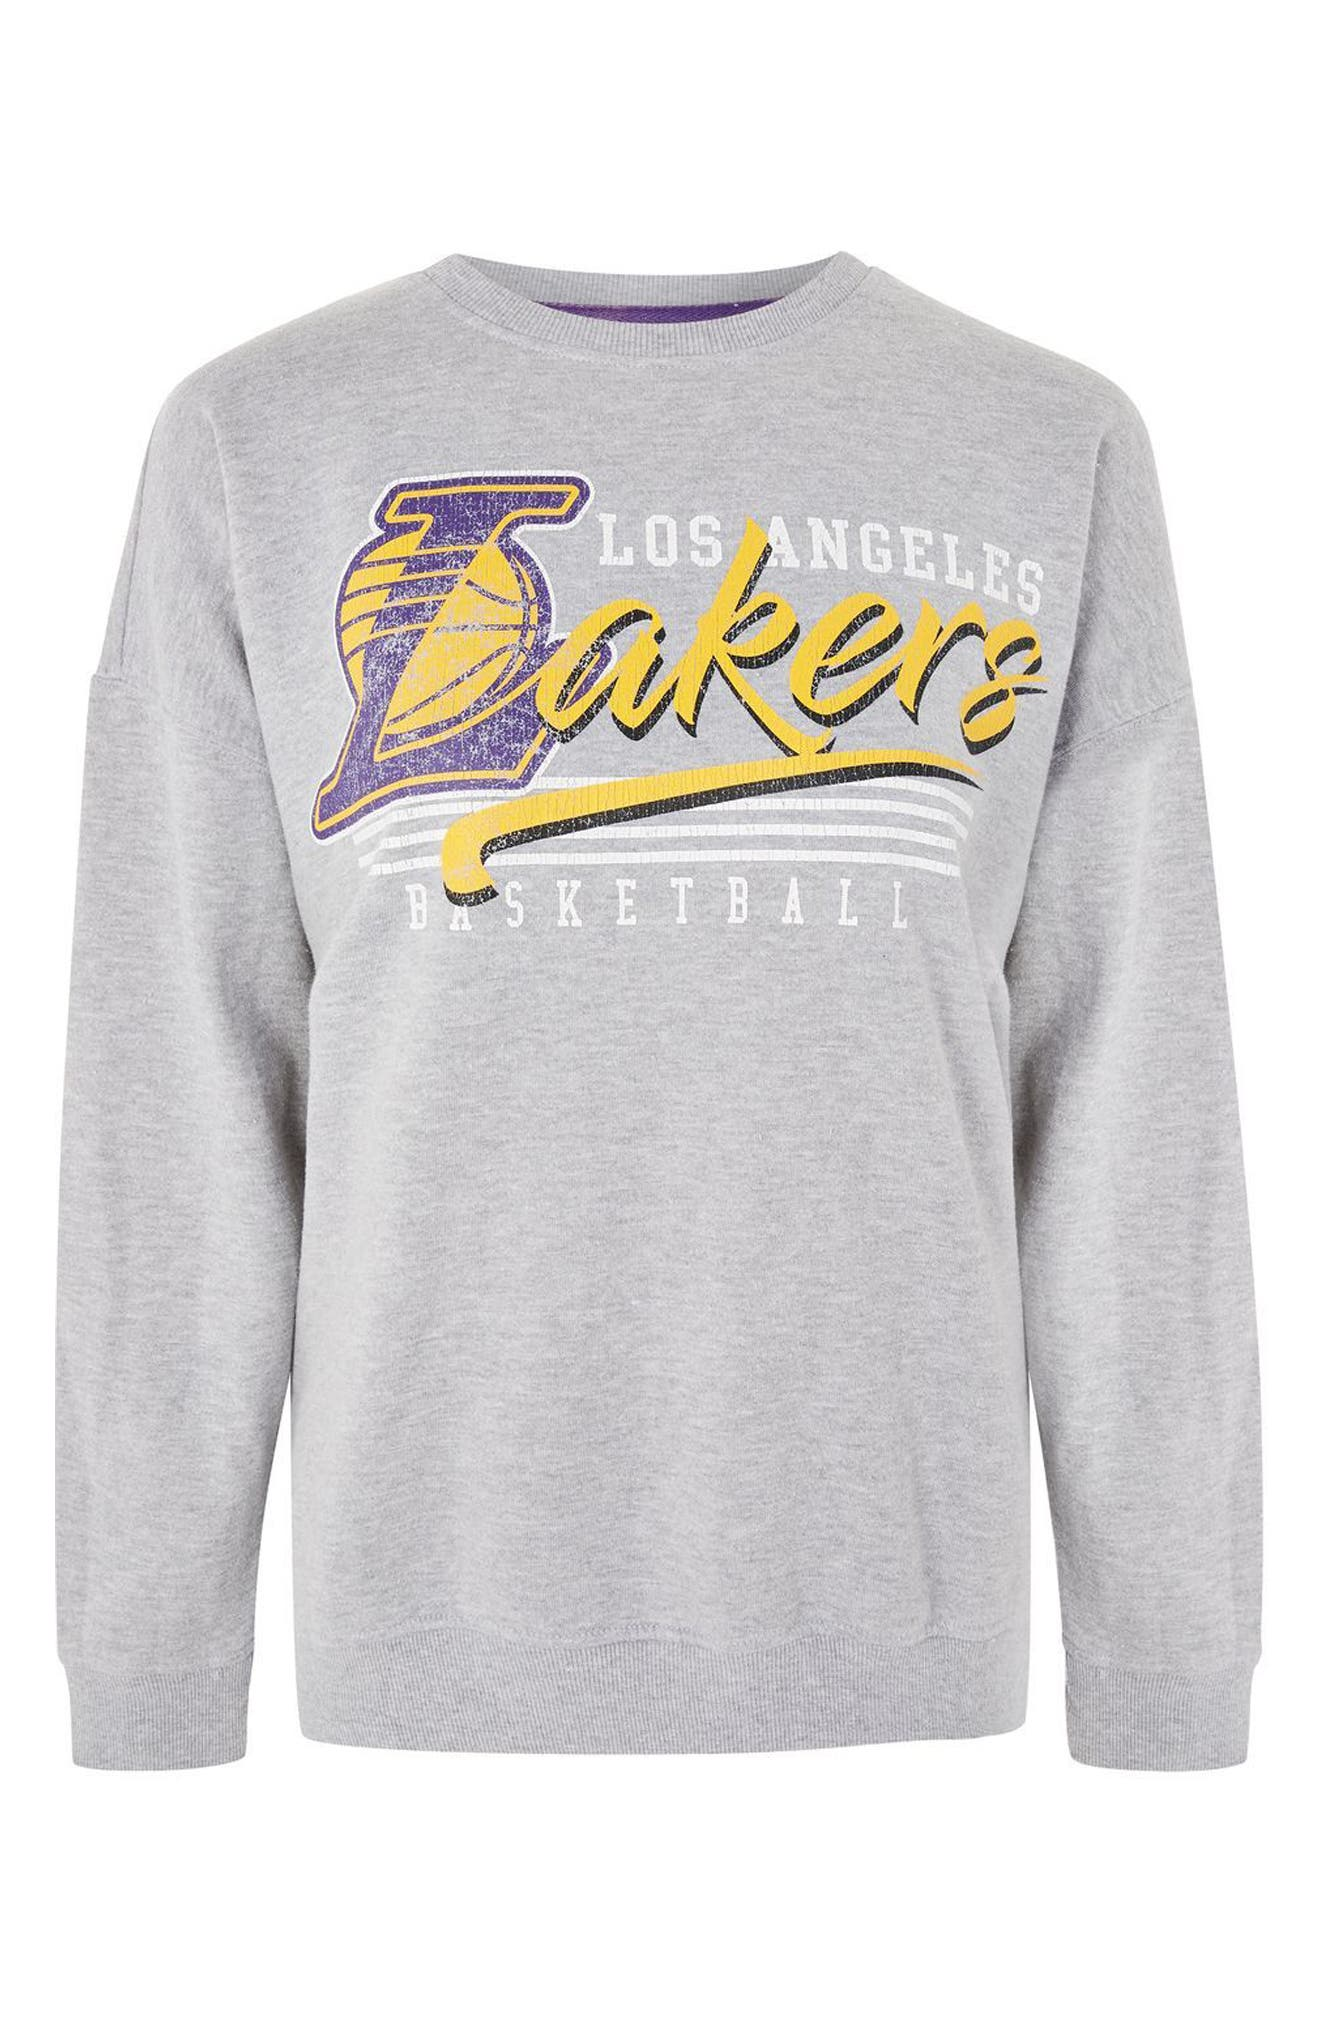 Topshop by UNK Los Angeles Lakers Sweatshirt